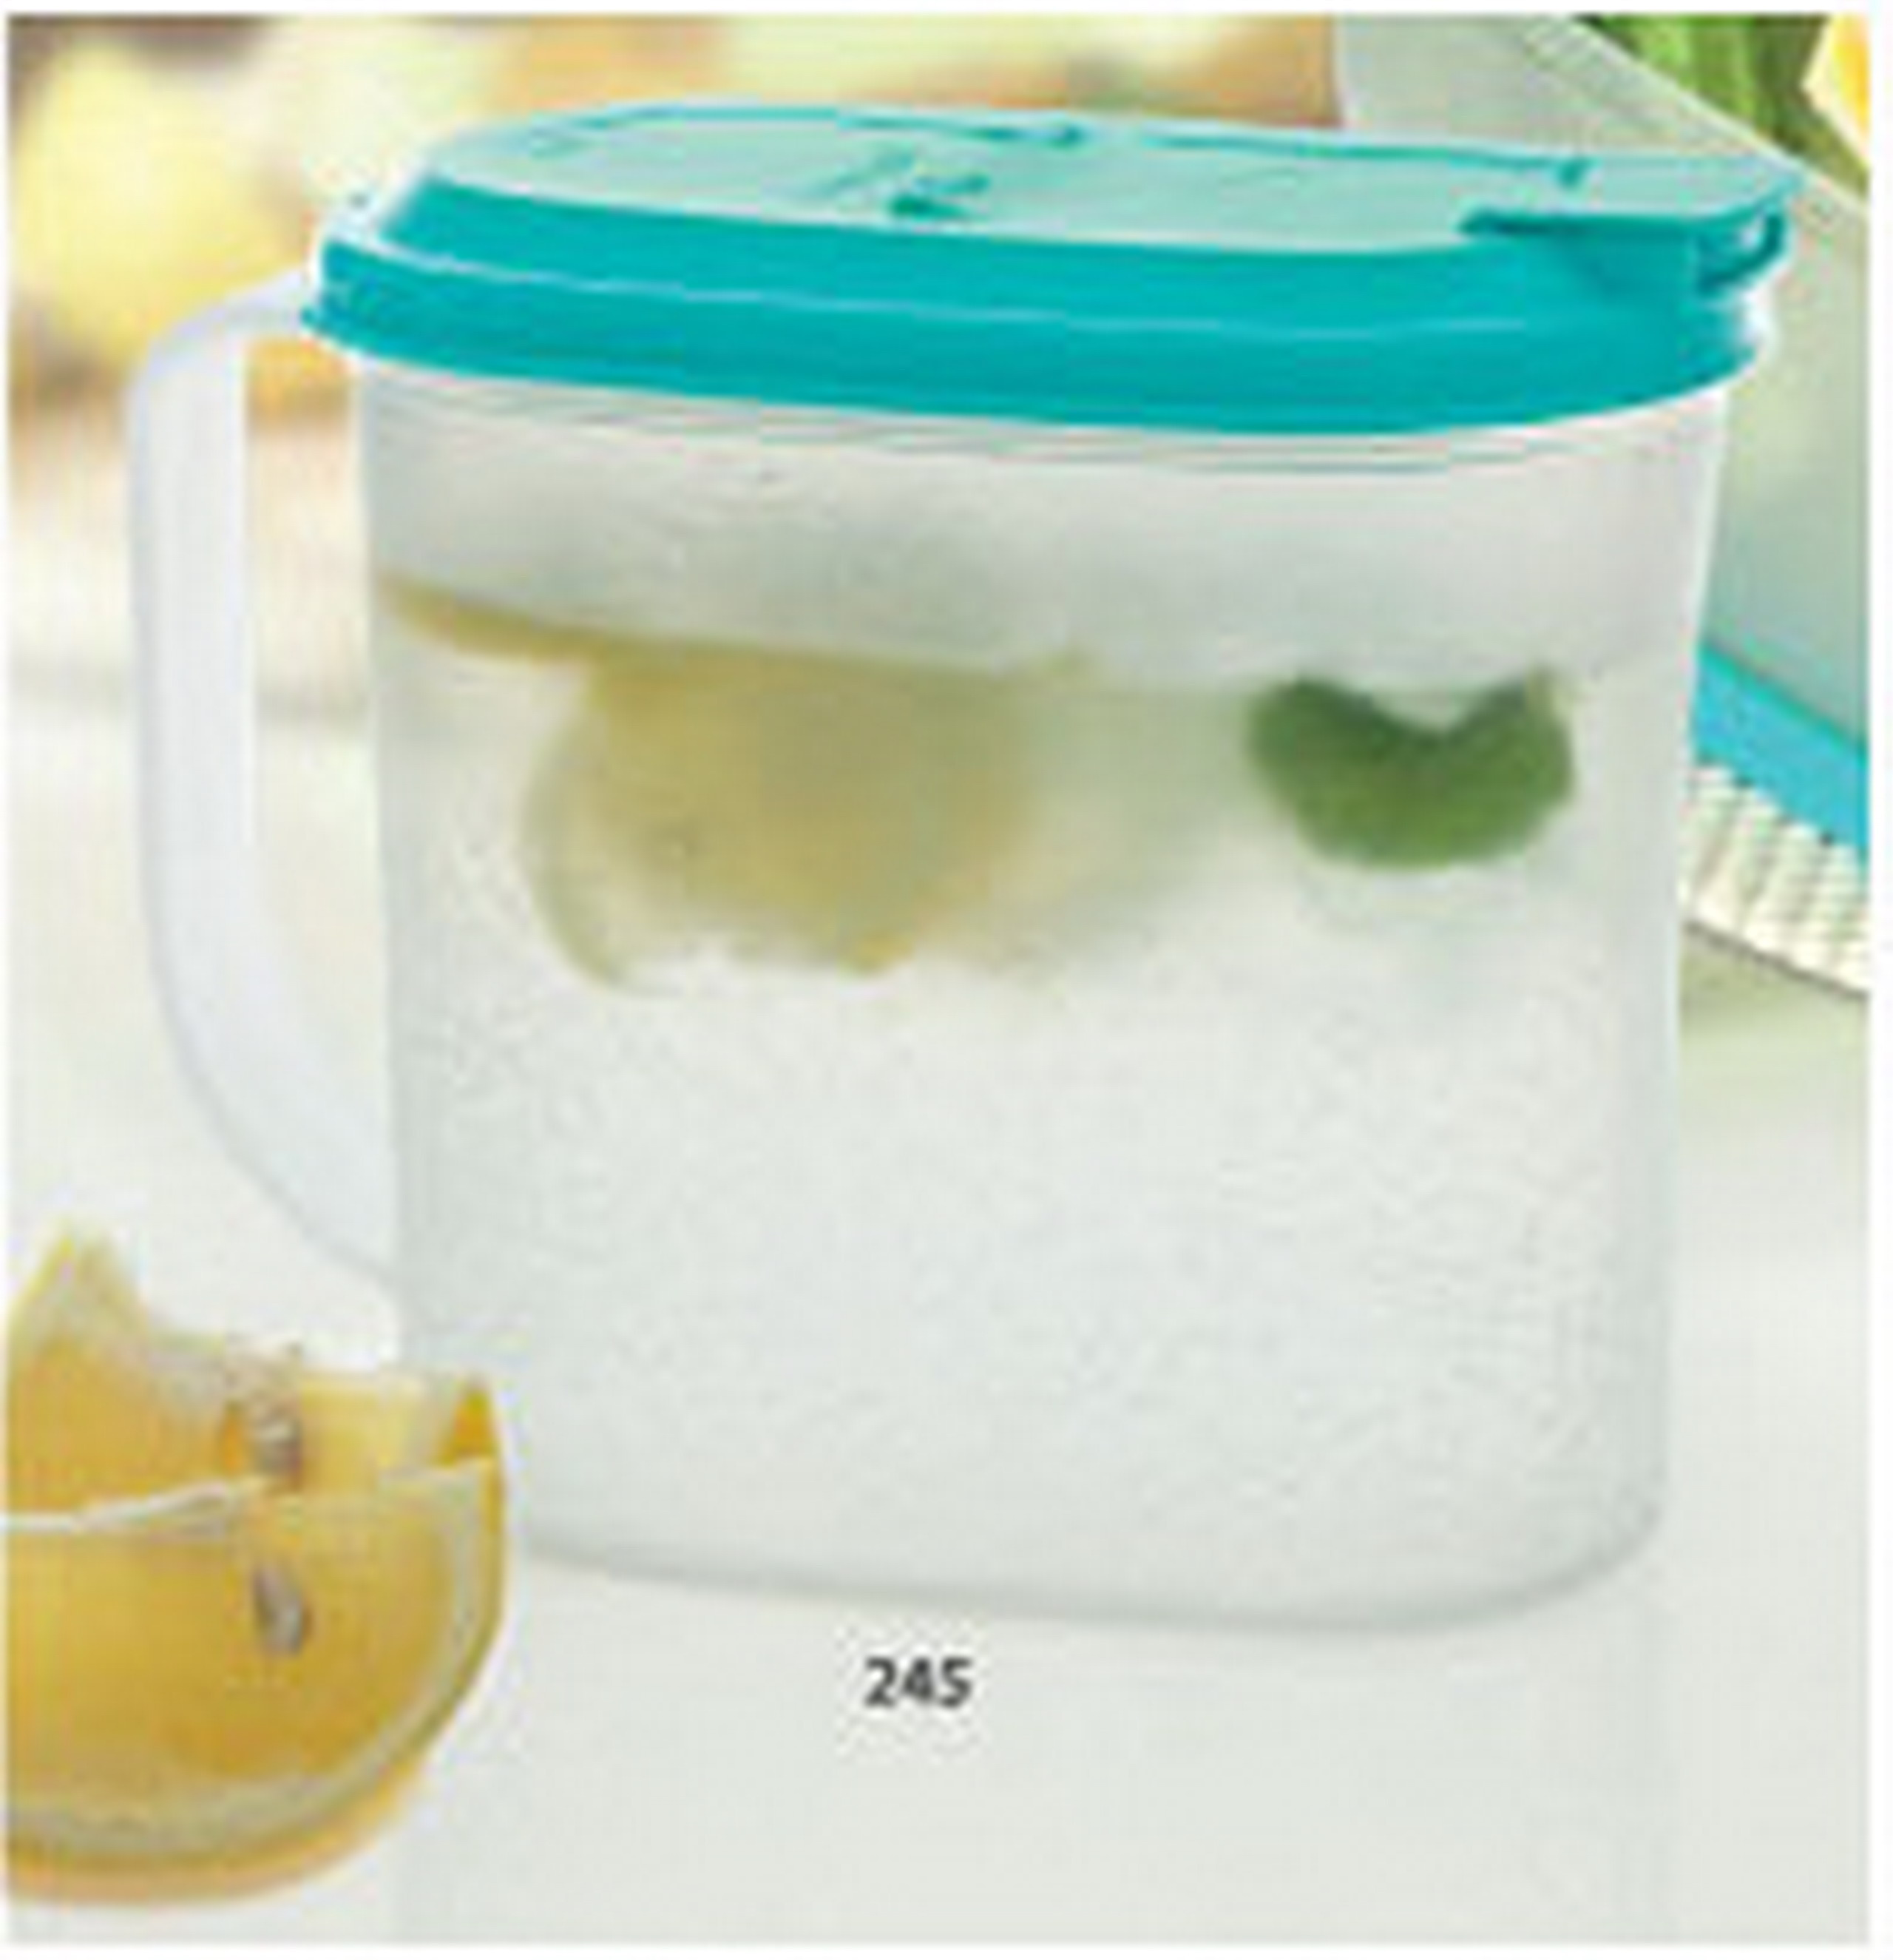 http://freetupperware.files.wordpress.com/2013/08/tupperware-indonesia-1-l-fridge-jug.jpg